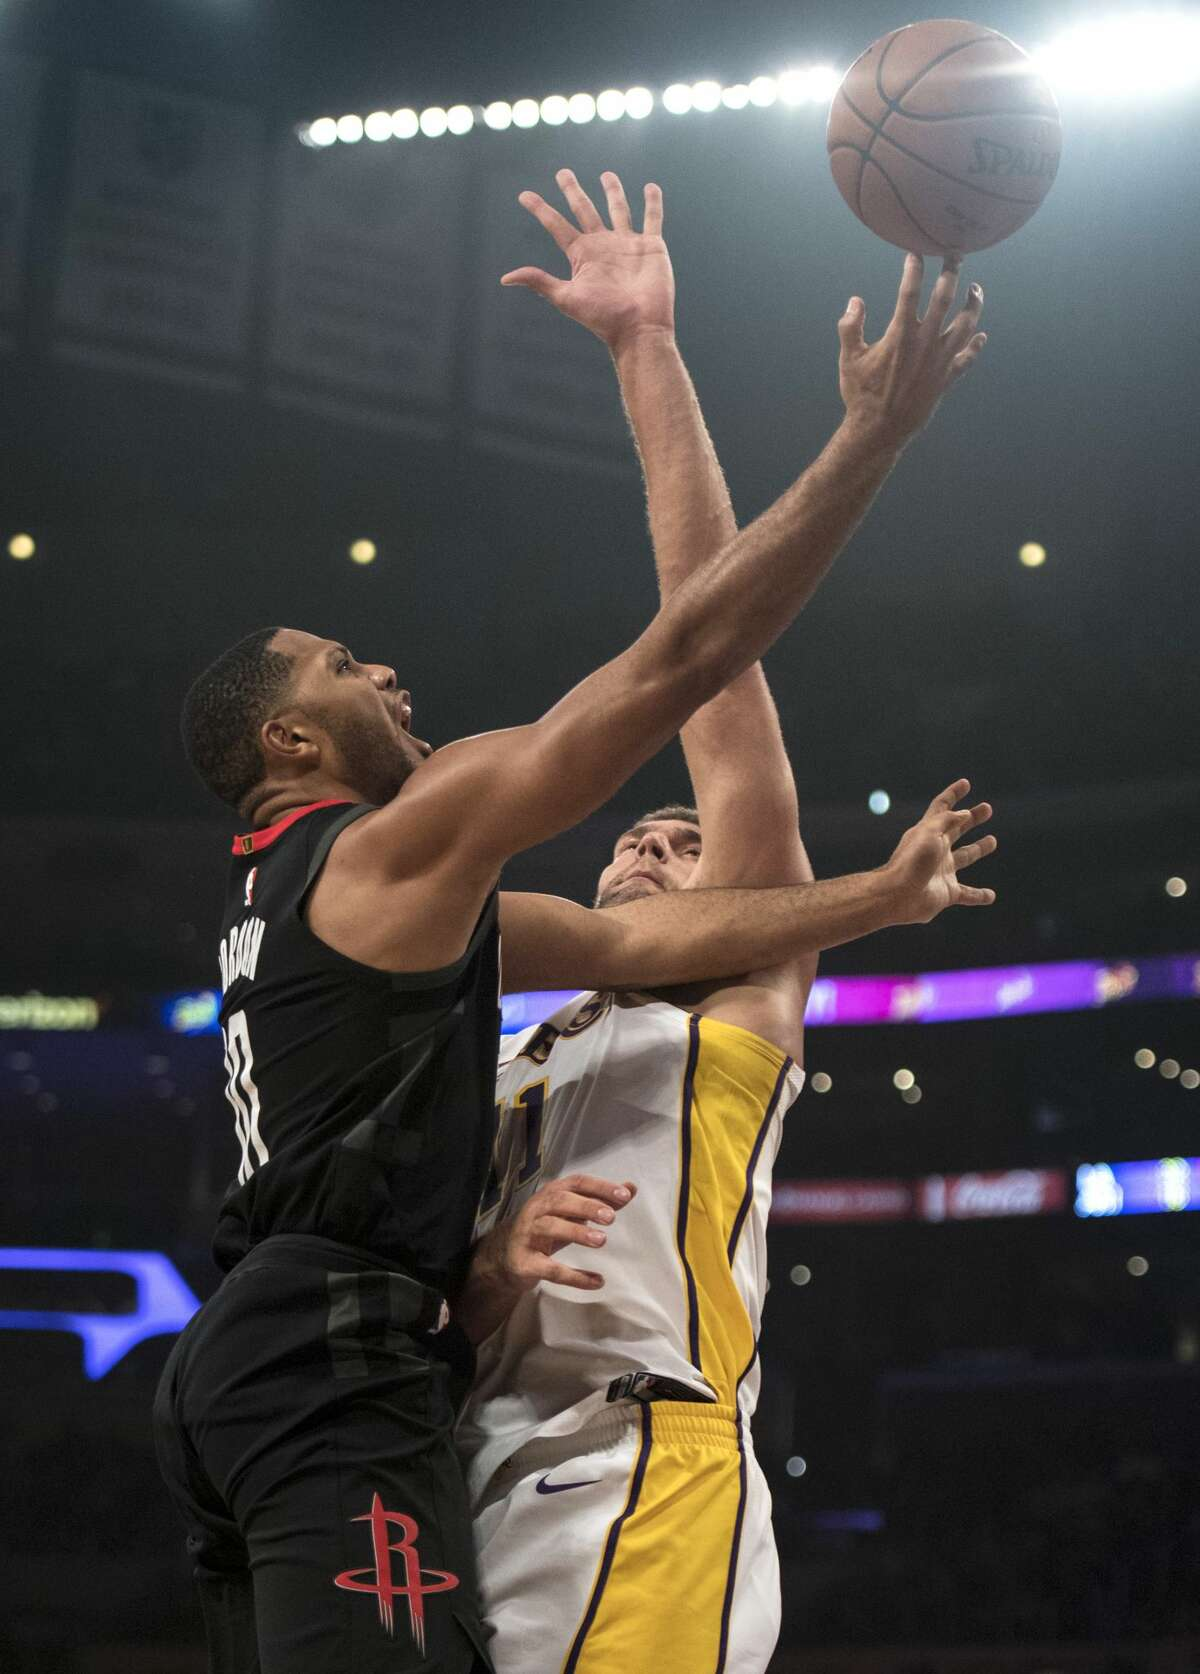 Houston Rockets guard Eric Gordon, left, shoots as Los Angeles Lakers center Brook Lopez (11) defends during the first half of an NBA basketball game Sunday, Dec. 3, 2017, in Los Angeles. (AP Photo/Kyusung Gong)